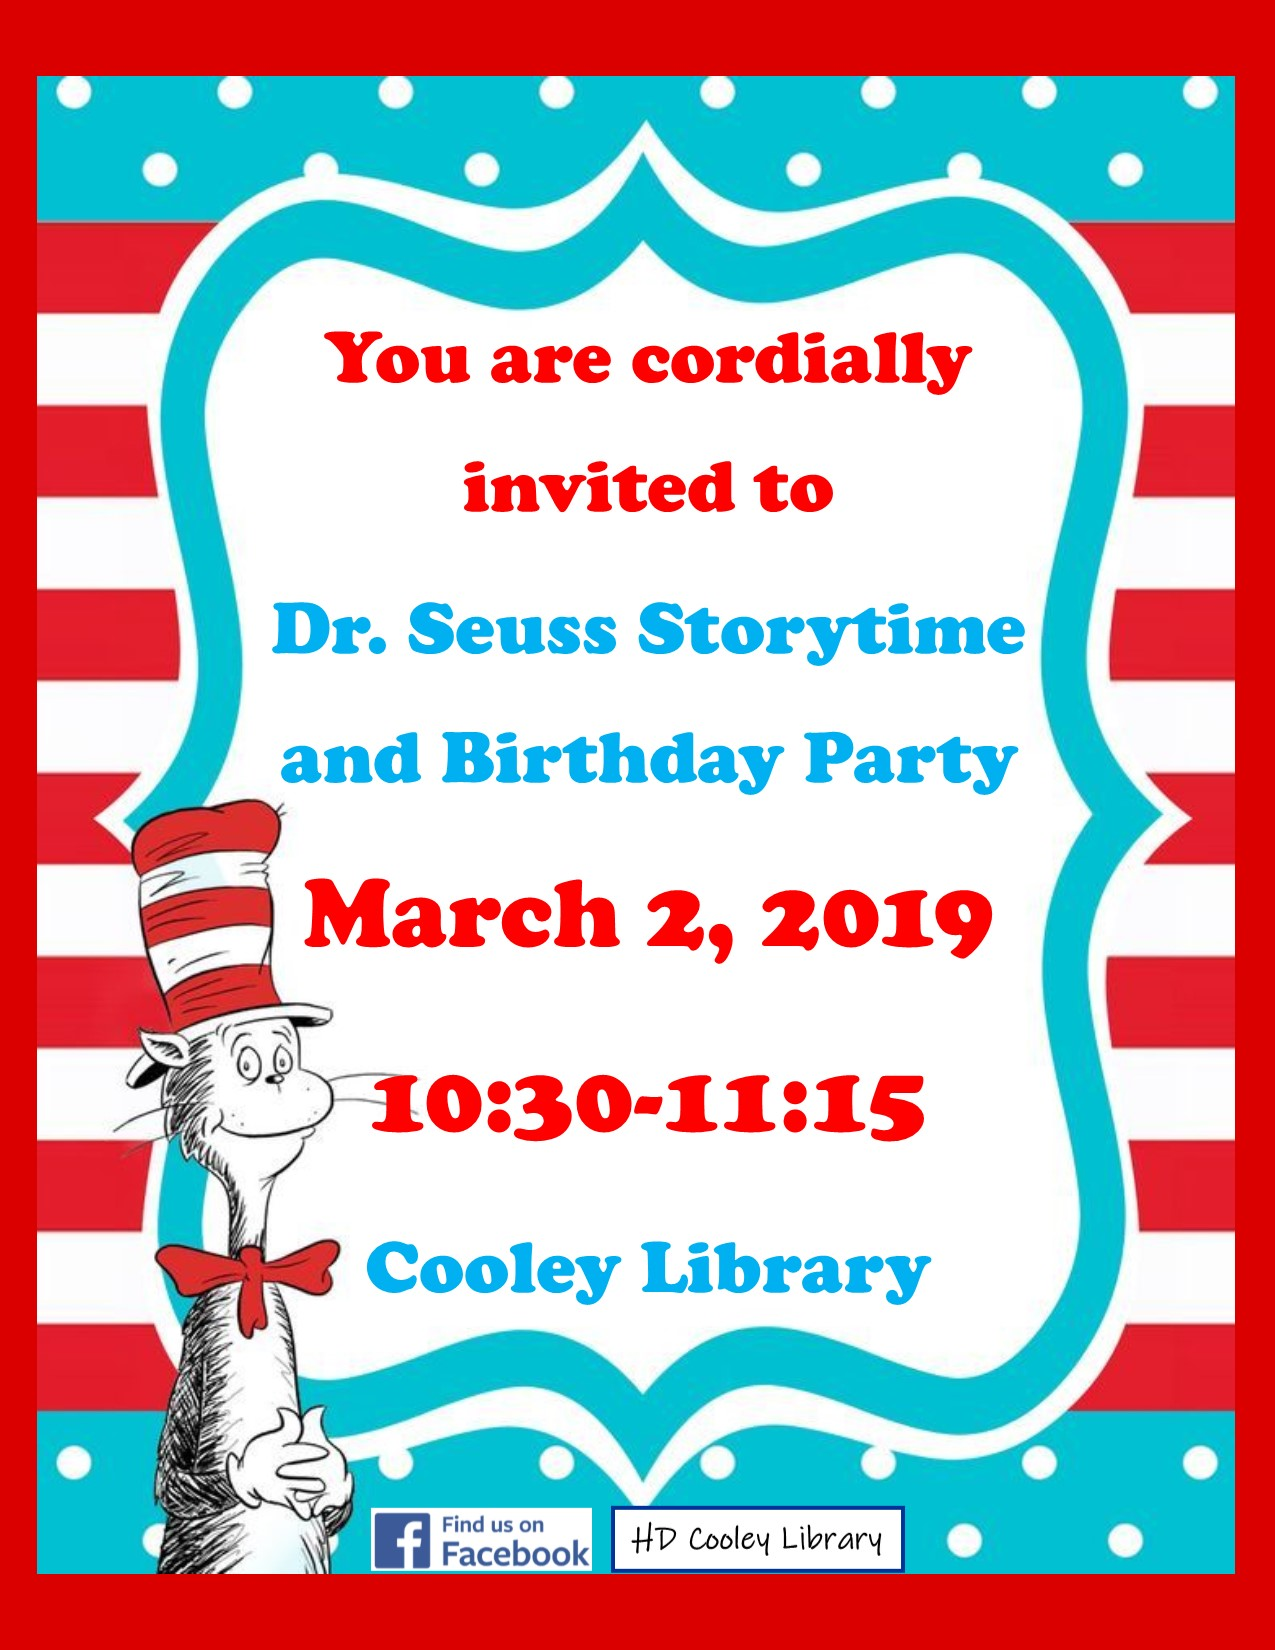 Seuss Storytime and Birthday Party